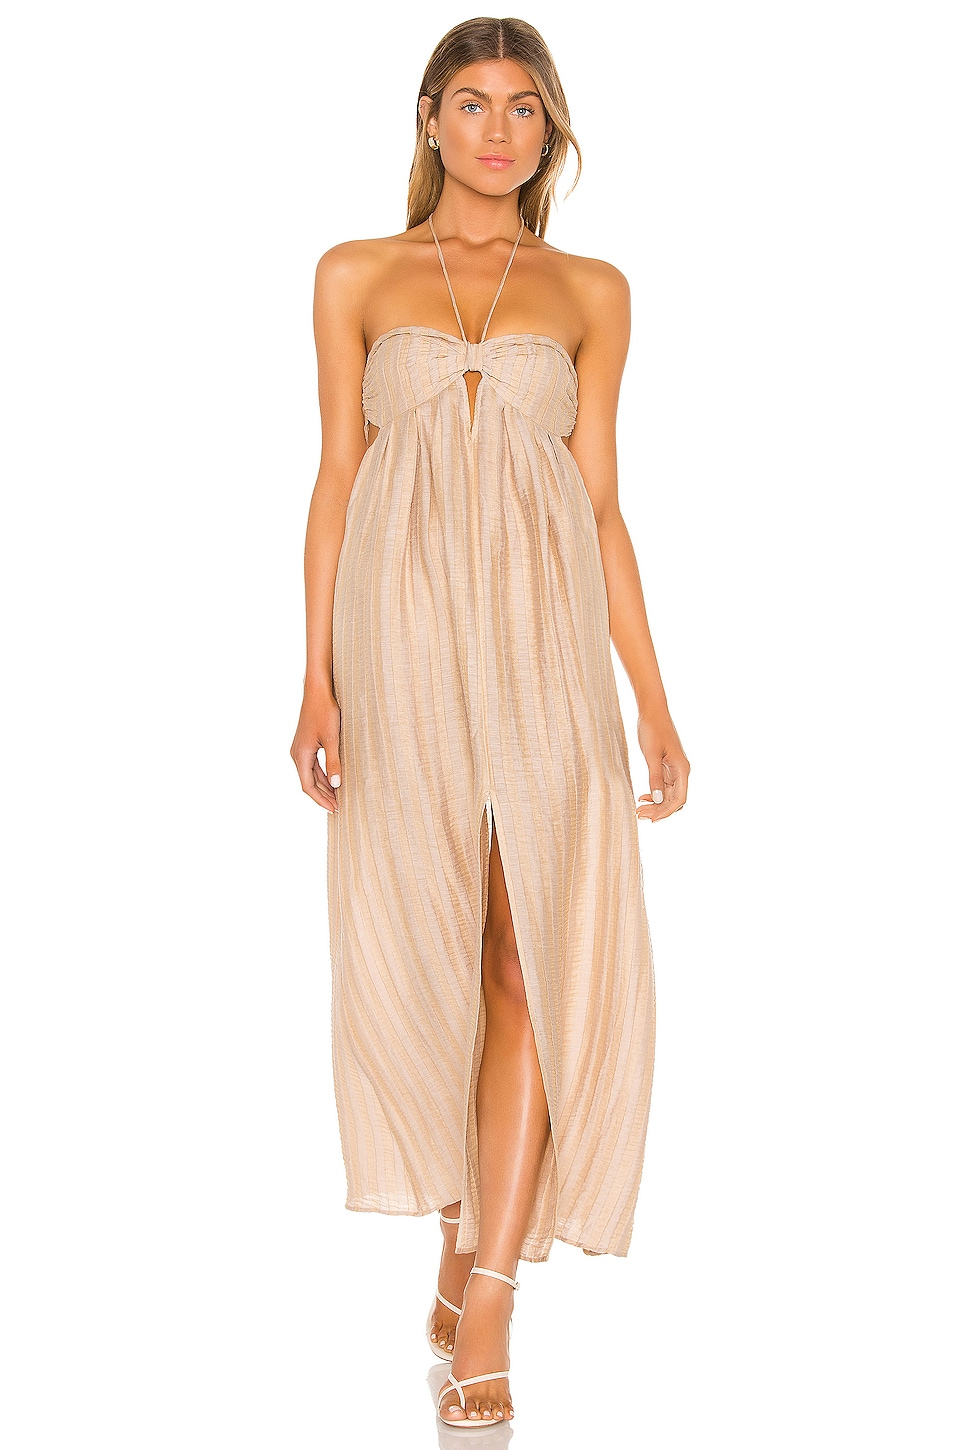 L'Academie The Jolena Maxi Dress in Wheat Brown